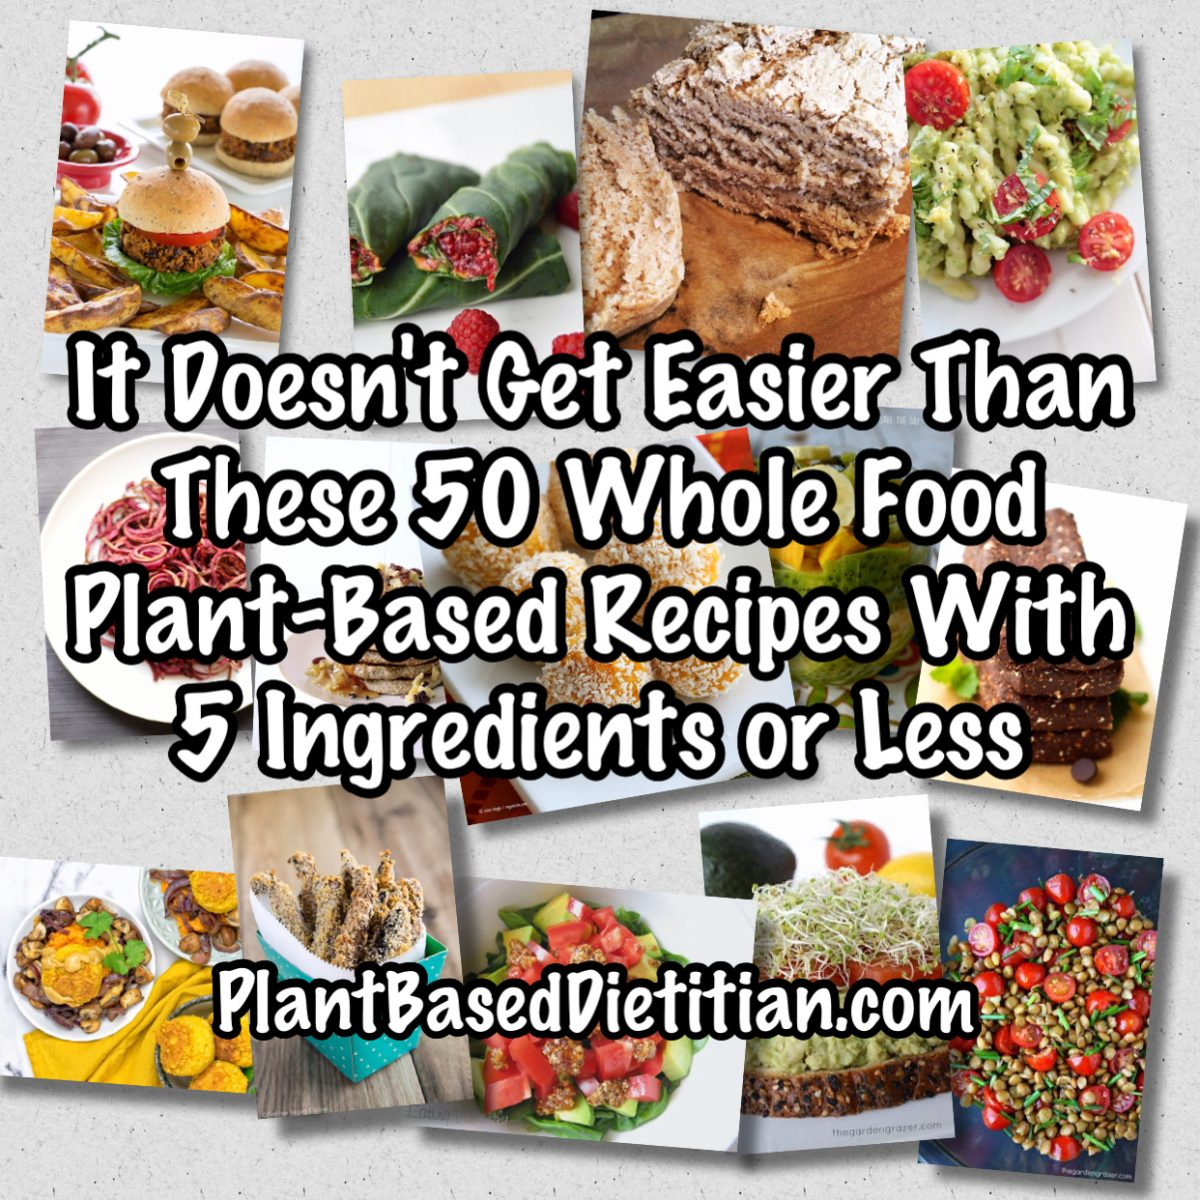 Whole Food Plant Based Diet Plan Recipes